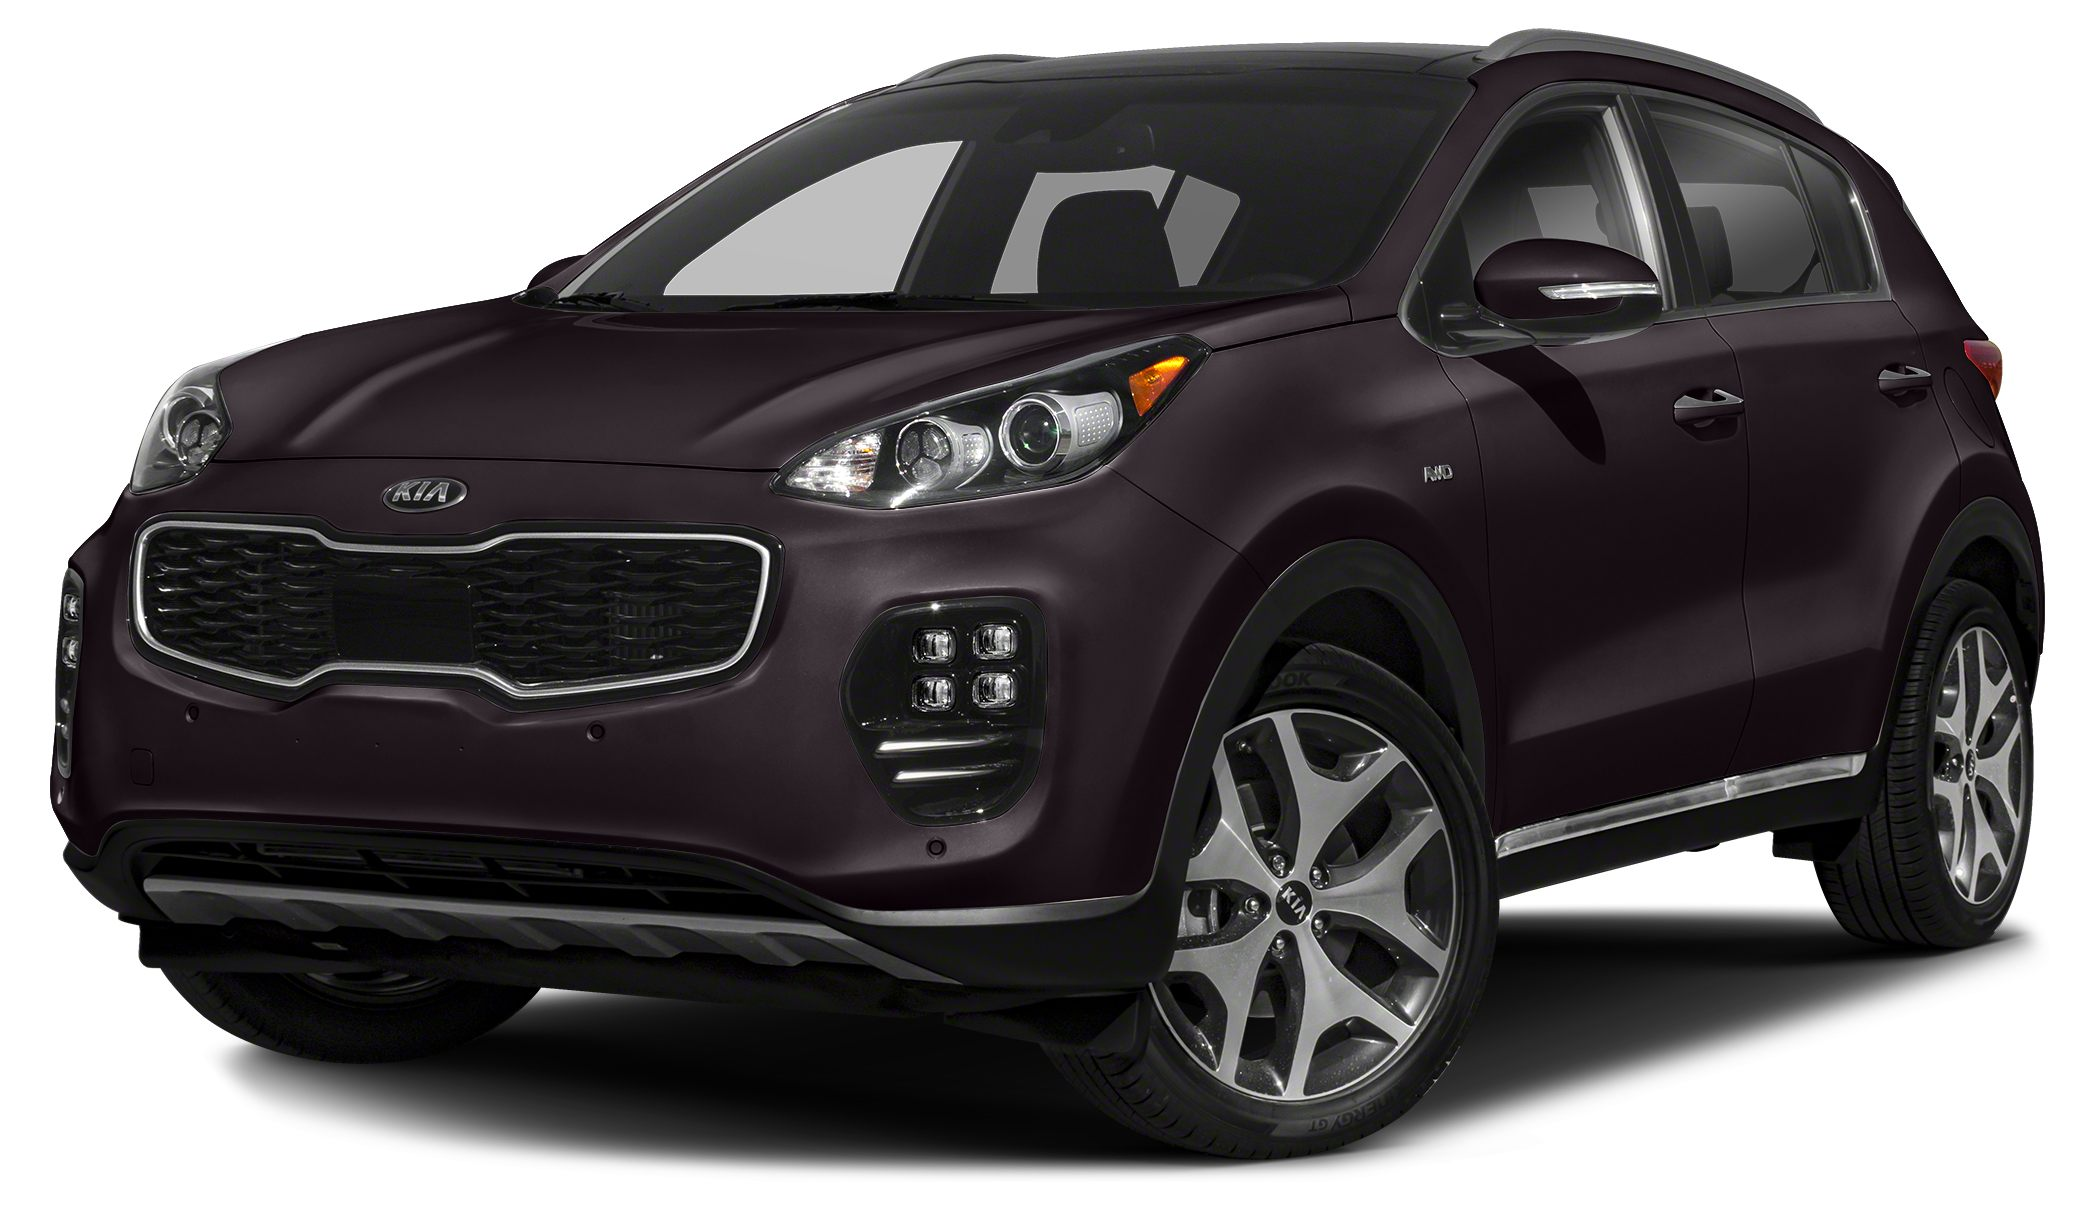 2017 Kia Sportage SX Turbo At Sunset Kia of Sarasota we pride ourselves on exceptional customer se